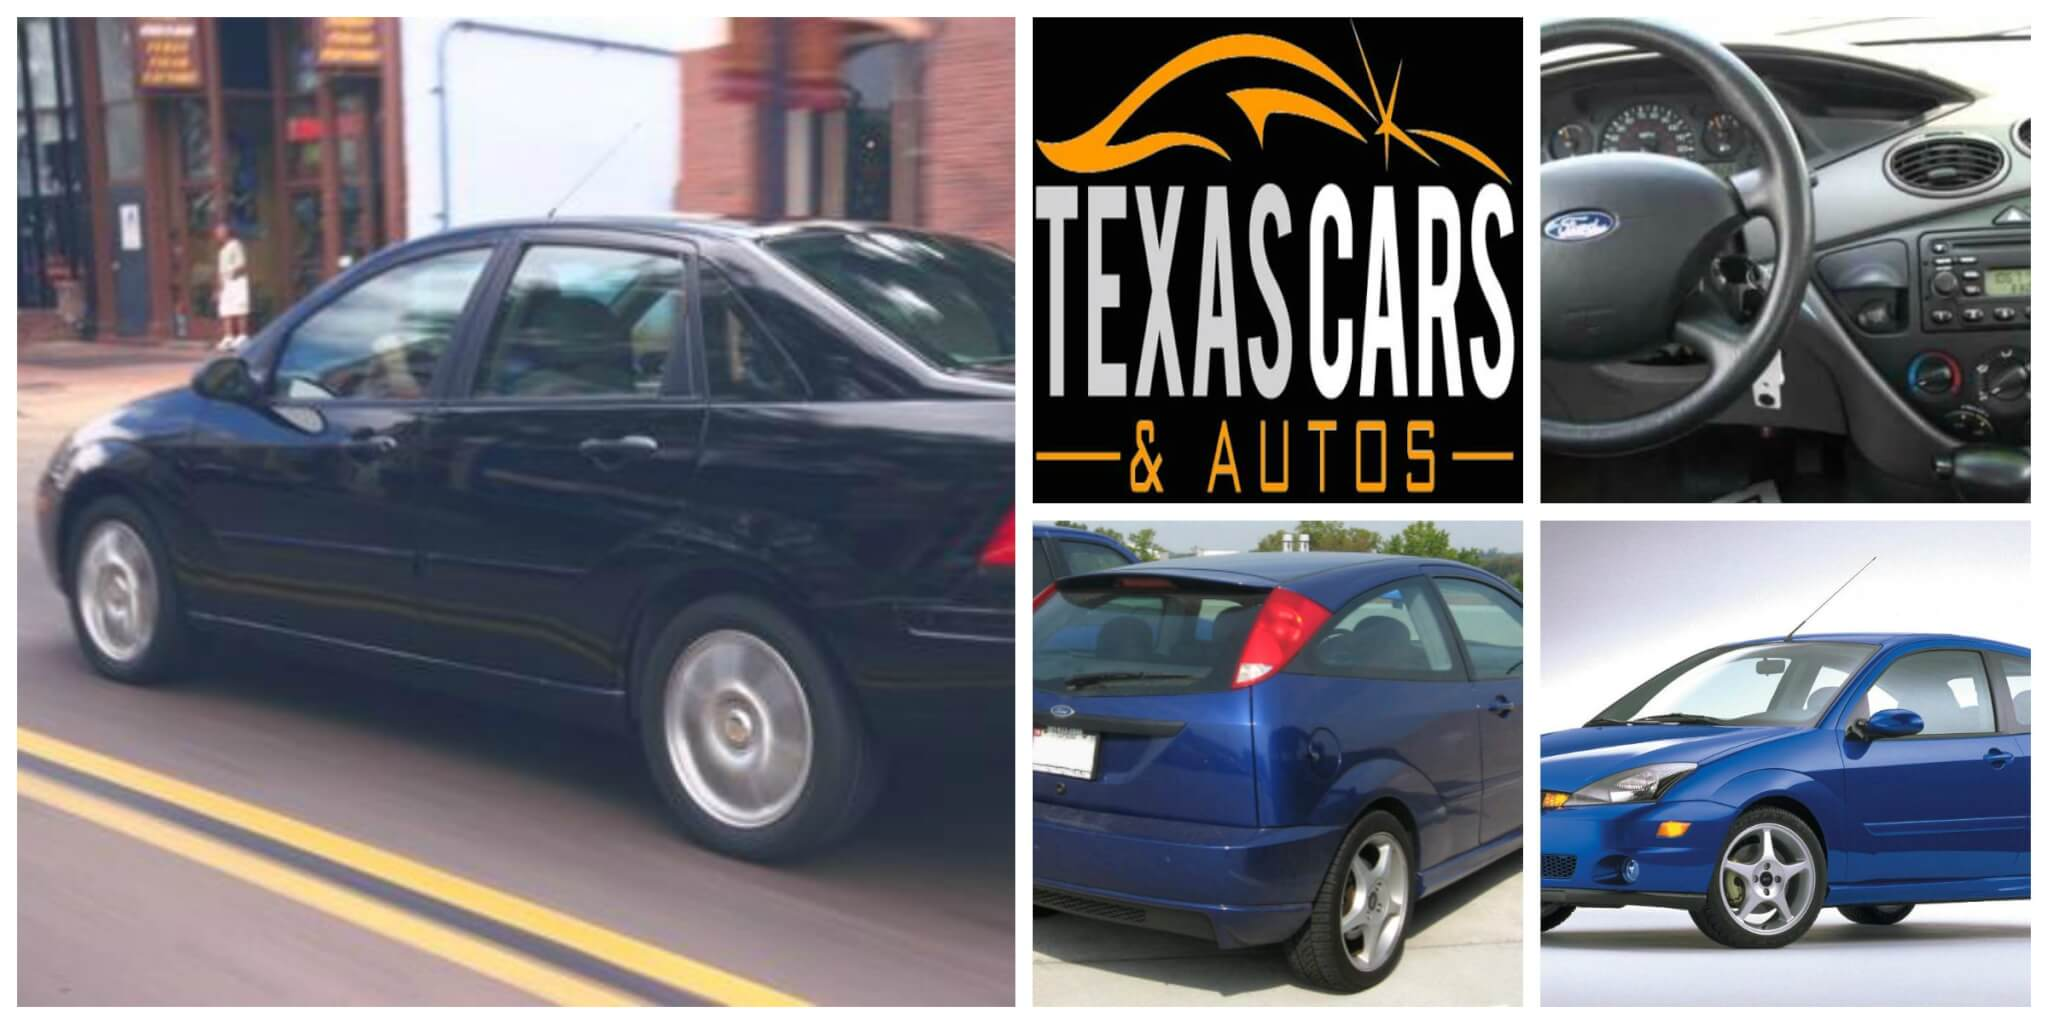 9 best used cars for sale under 5000 car deals texas cars u0026 autos